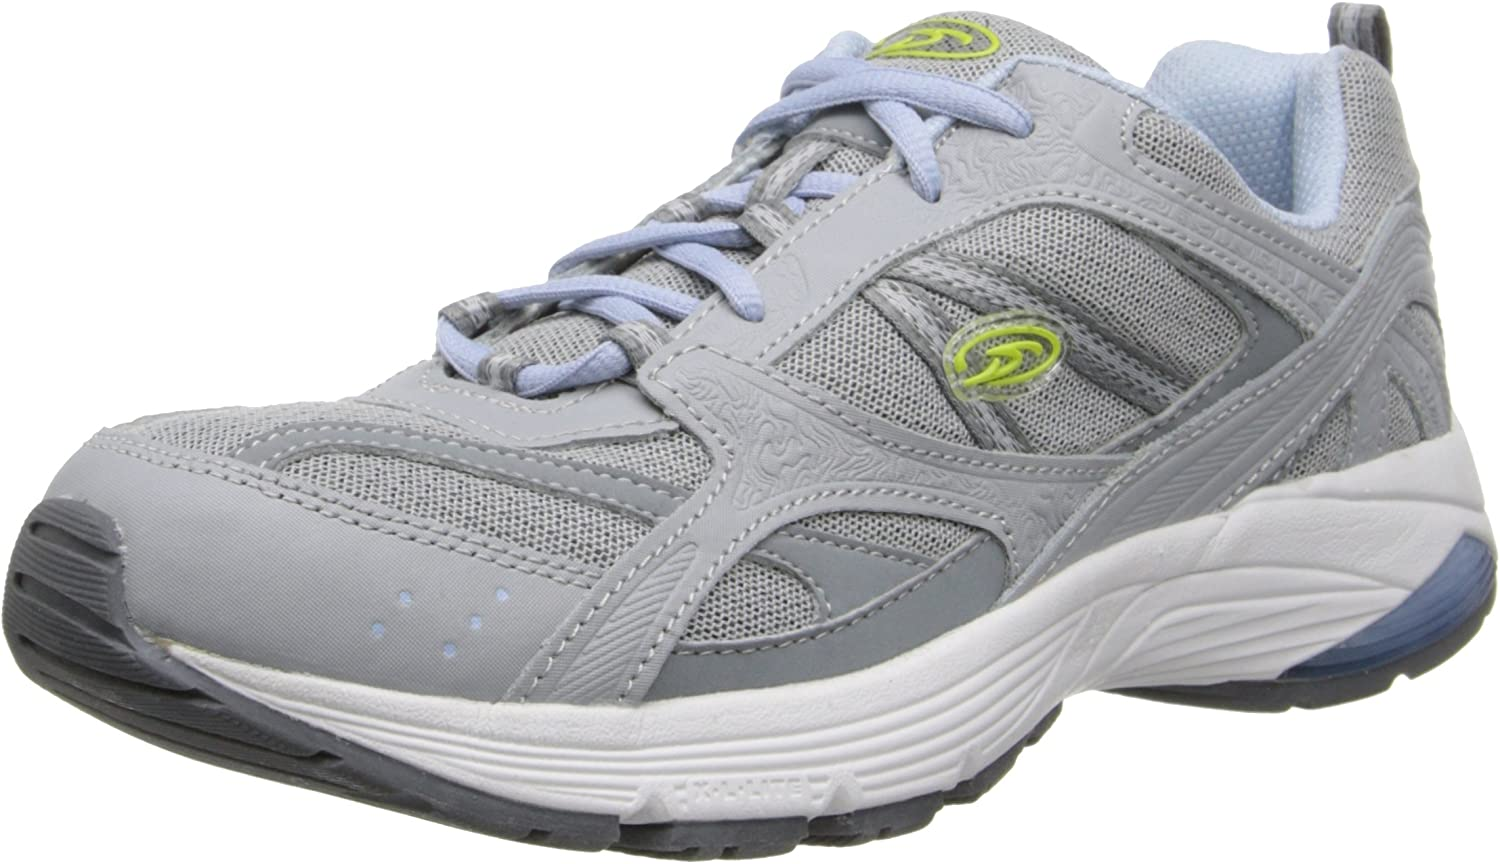 Dr. Scholl's Women's Curry-ls Fashion Sneaker